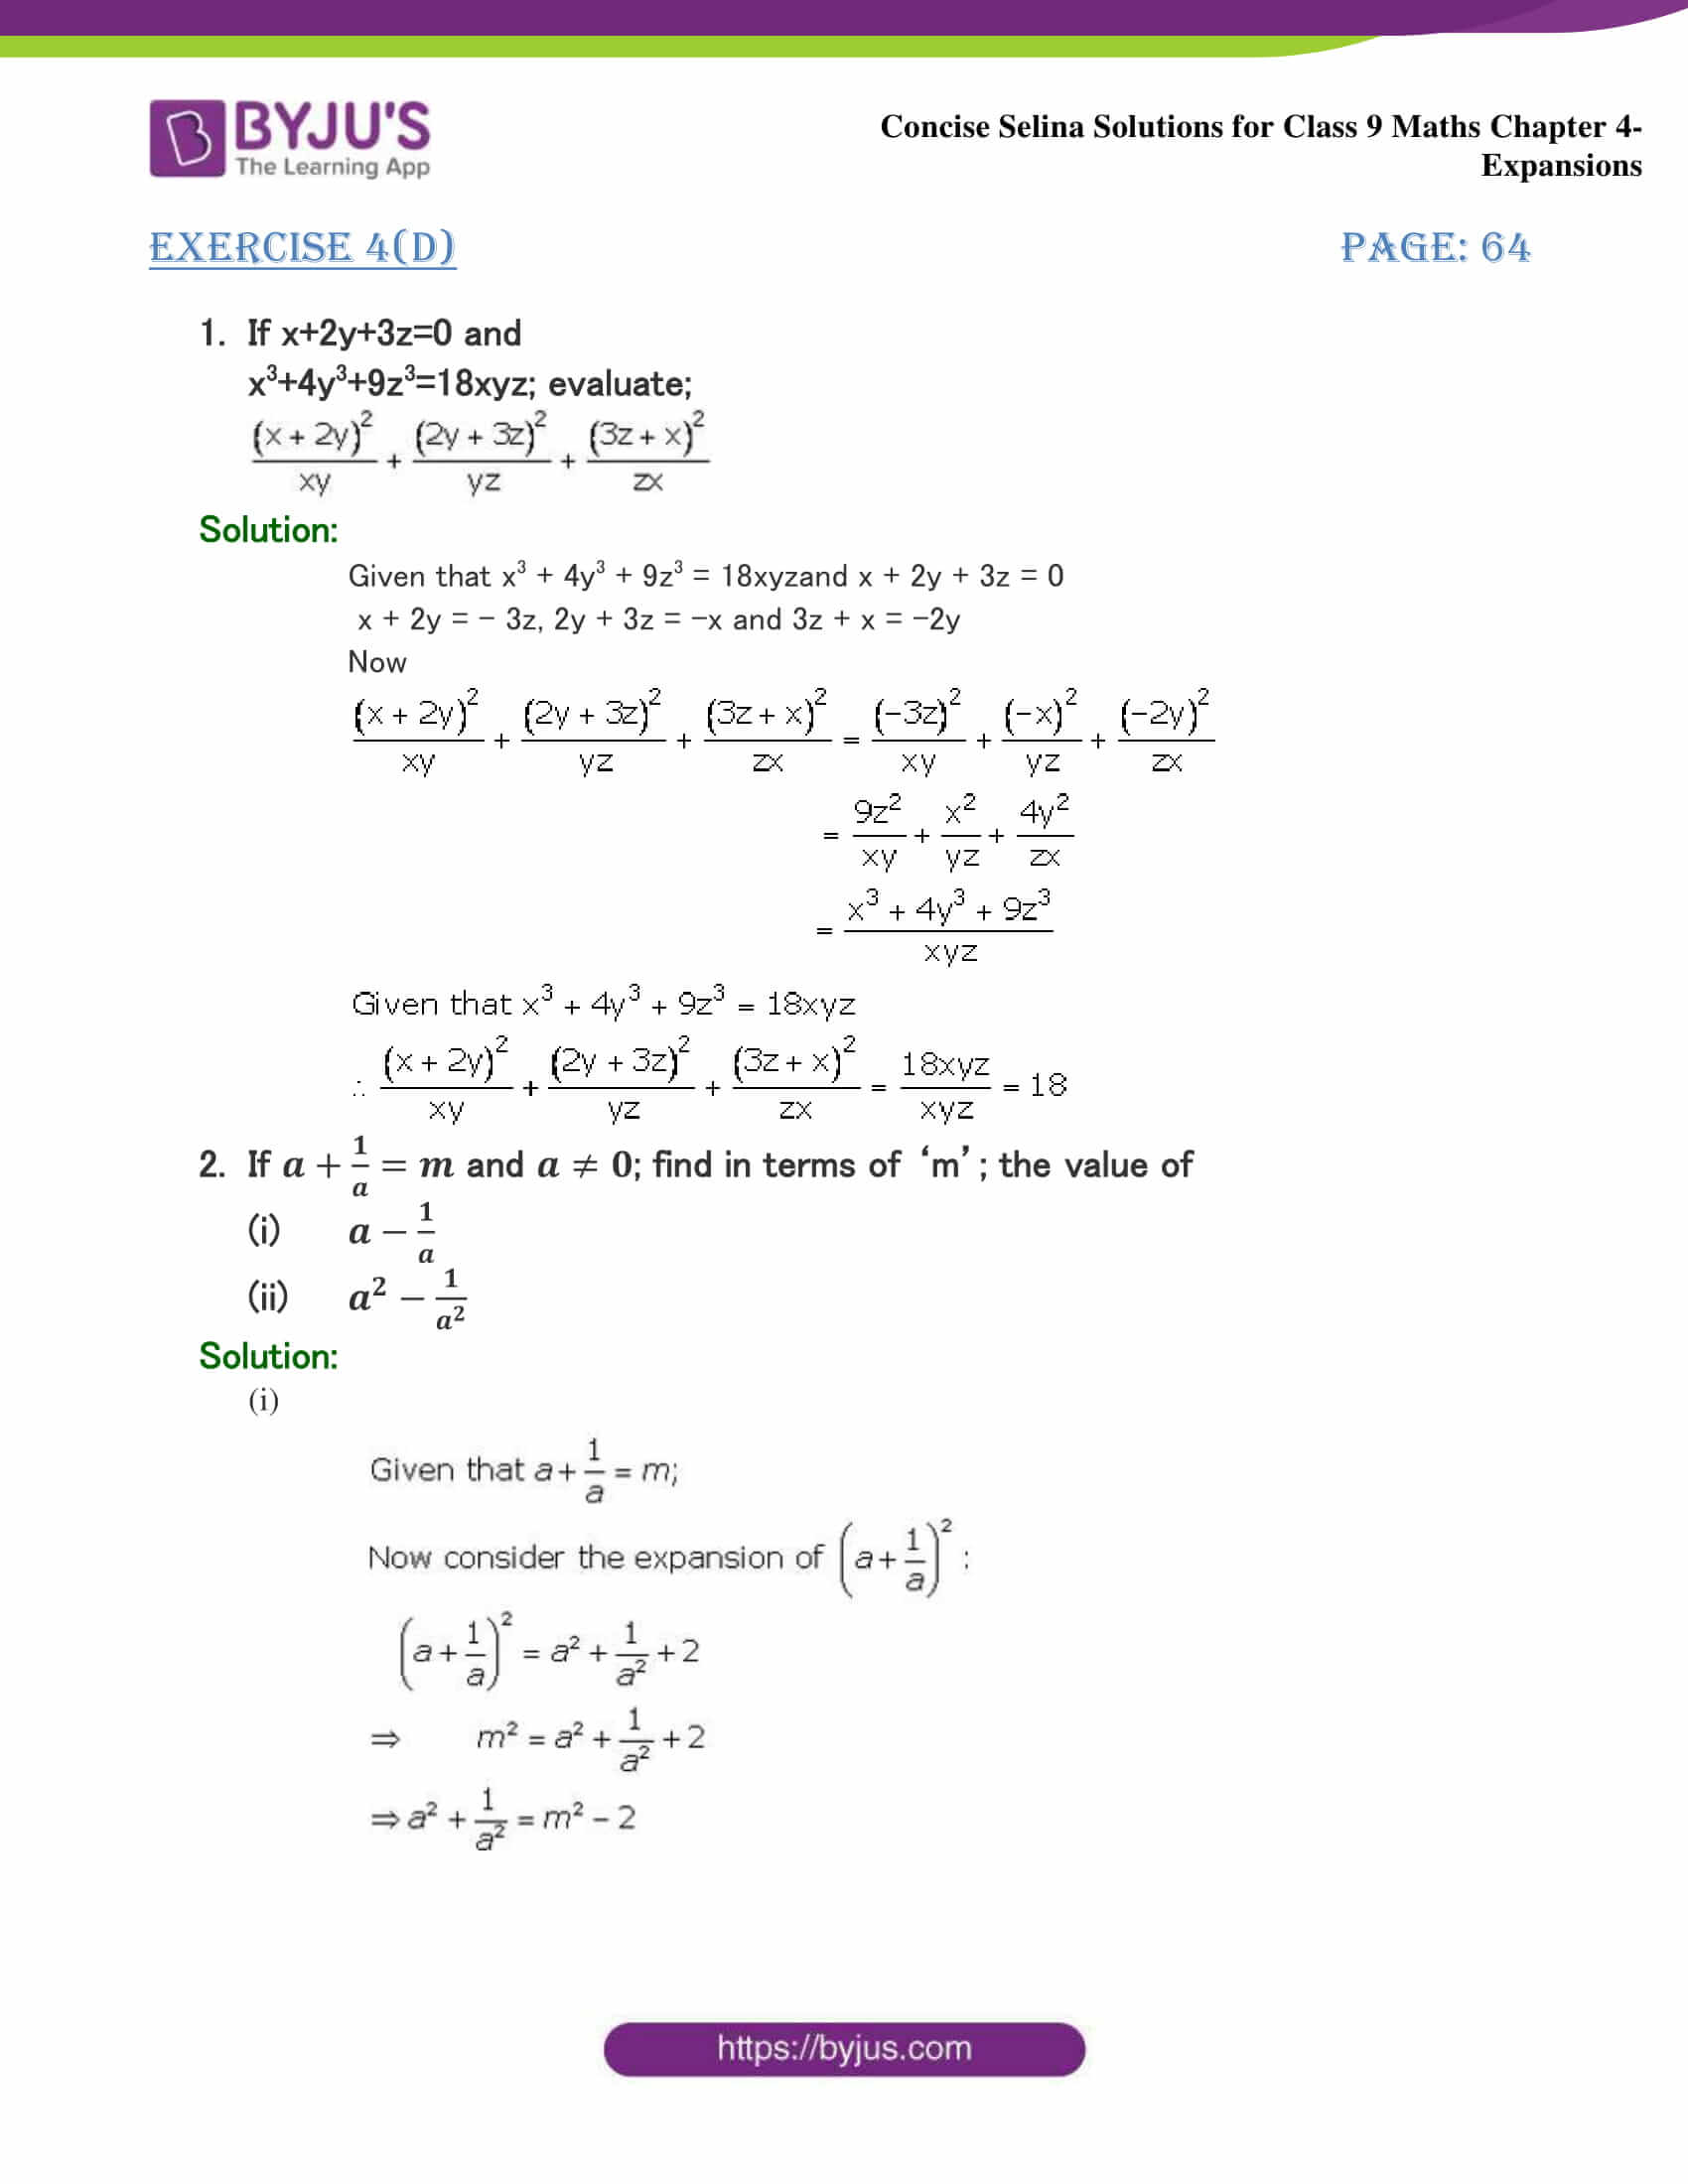 Selina Solutions Class 9 Maths Chapter 4 Expansions part 30